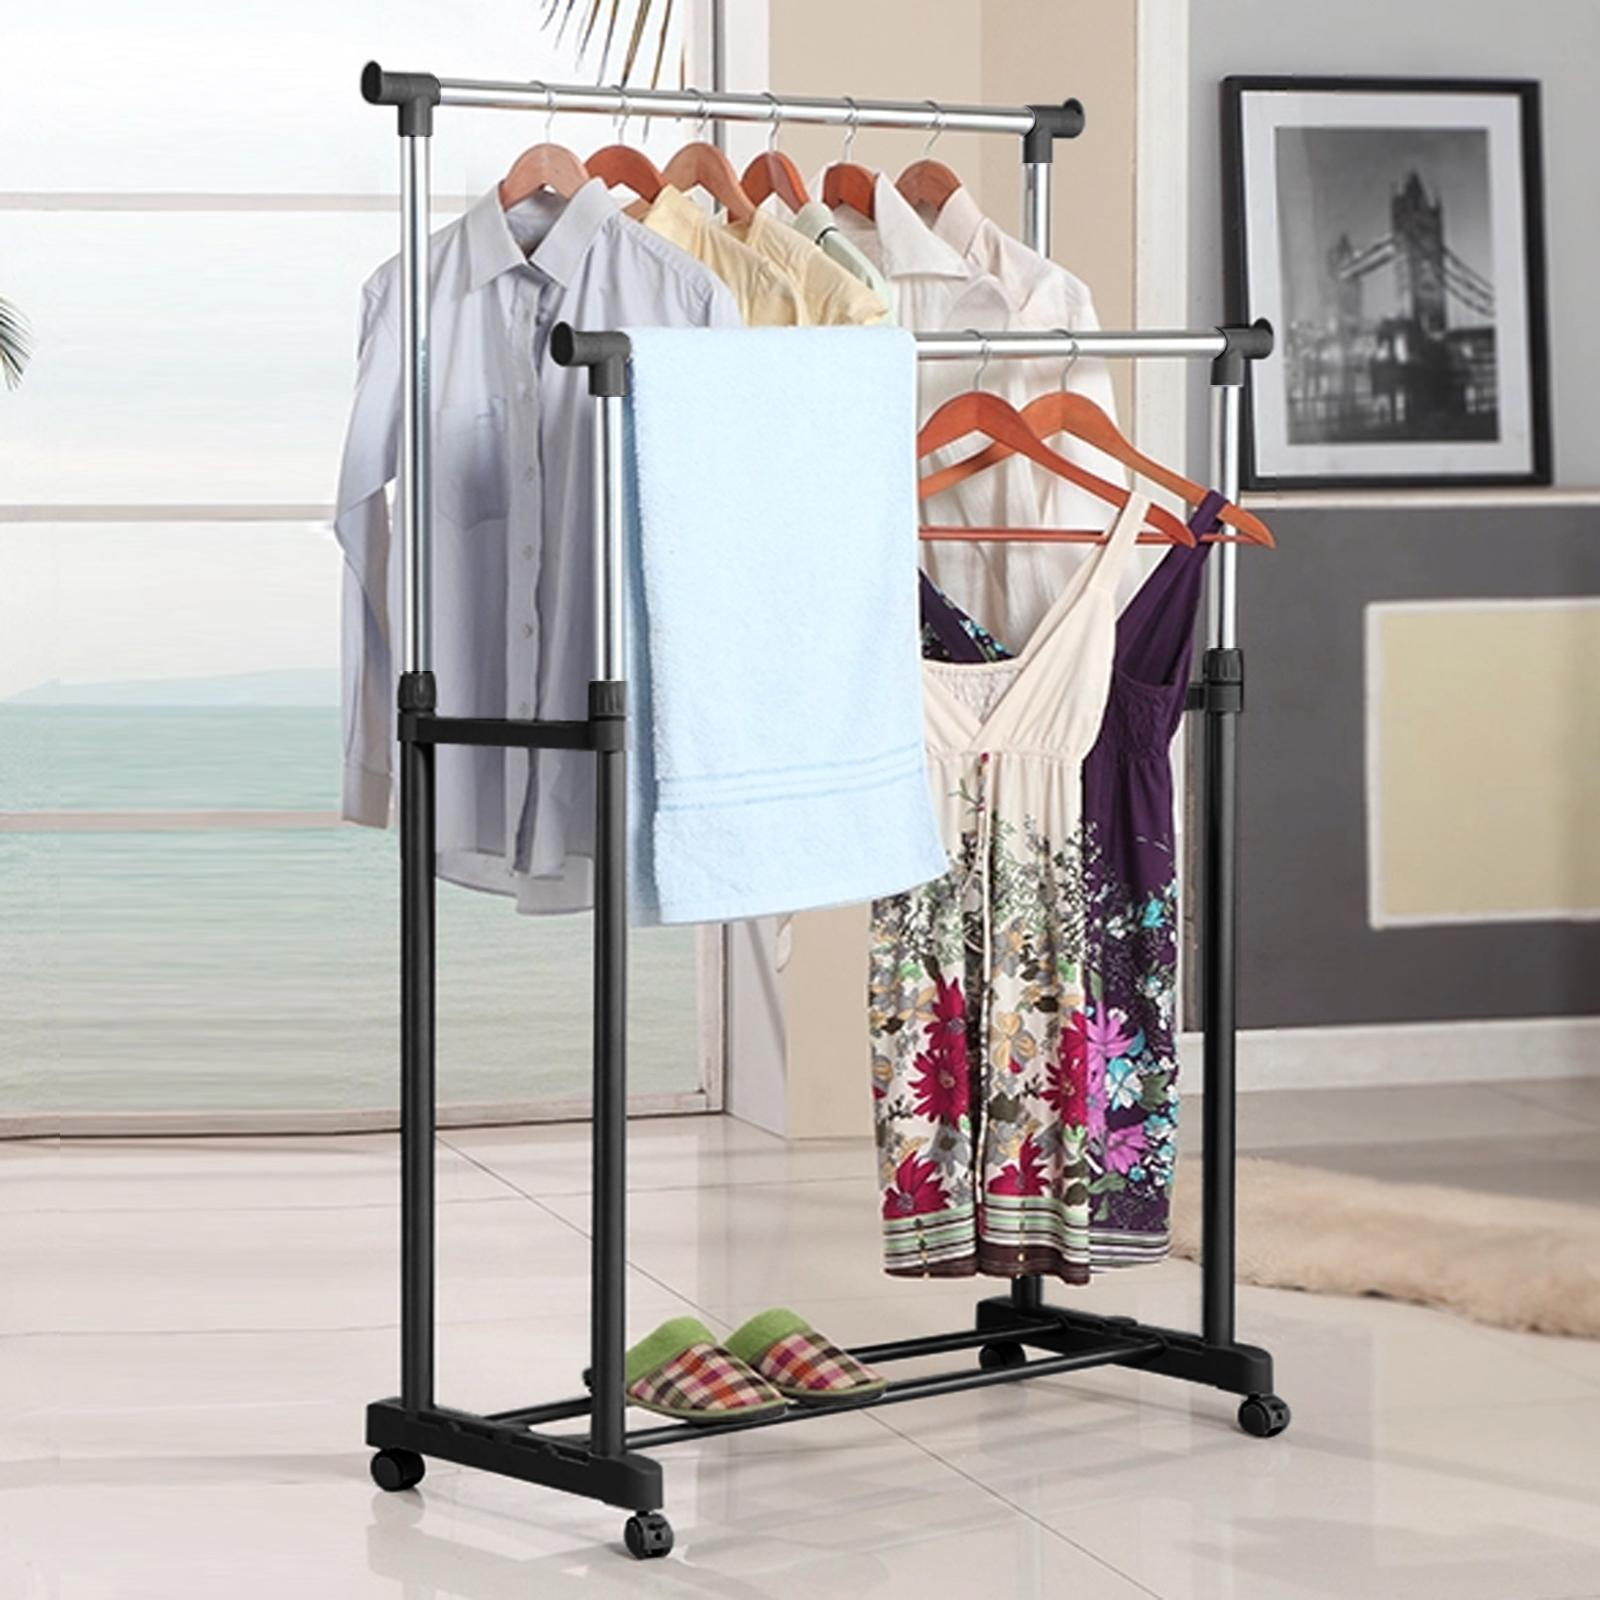 Double Rail Garment Rack Adjustable Laundry Hanger Rolling Clothes Drying Rack Laundry Hanger